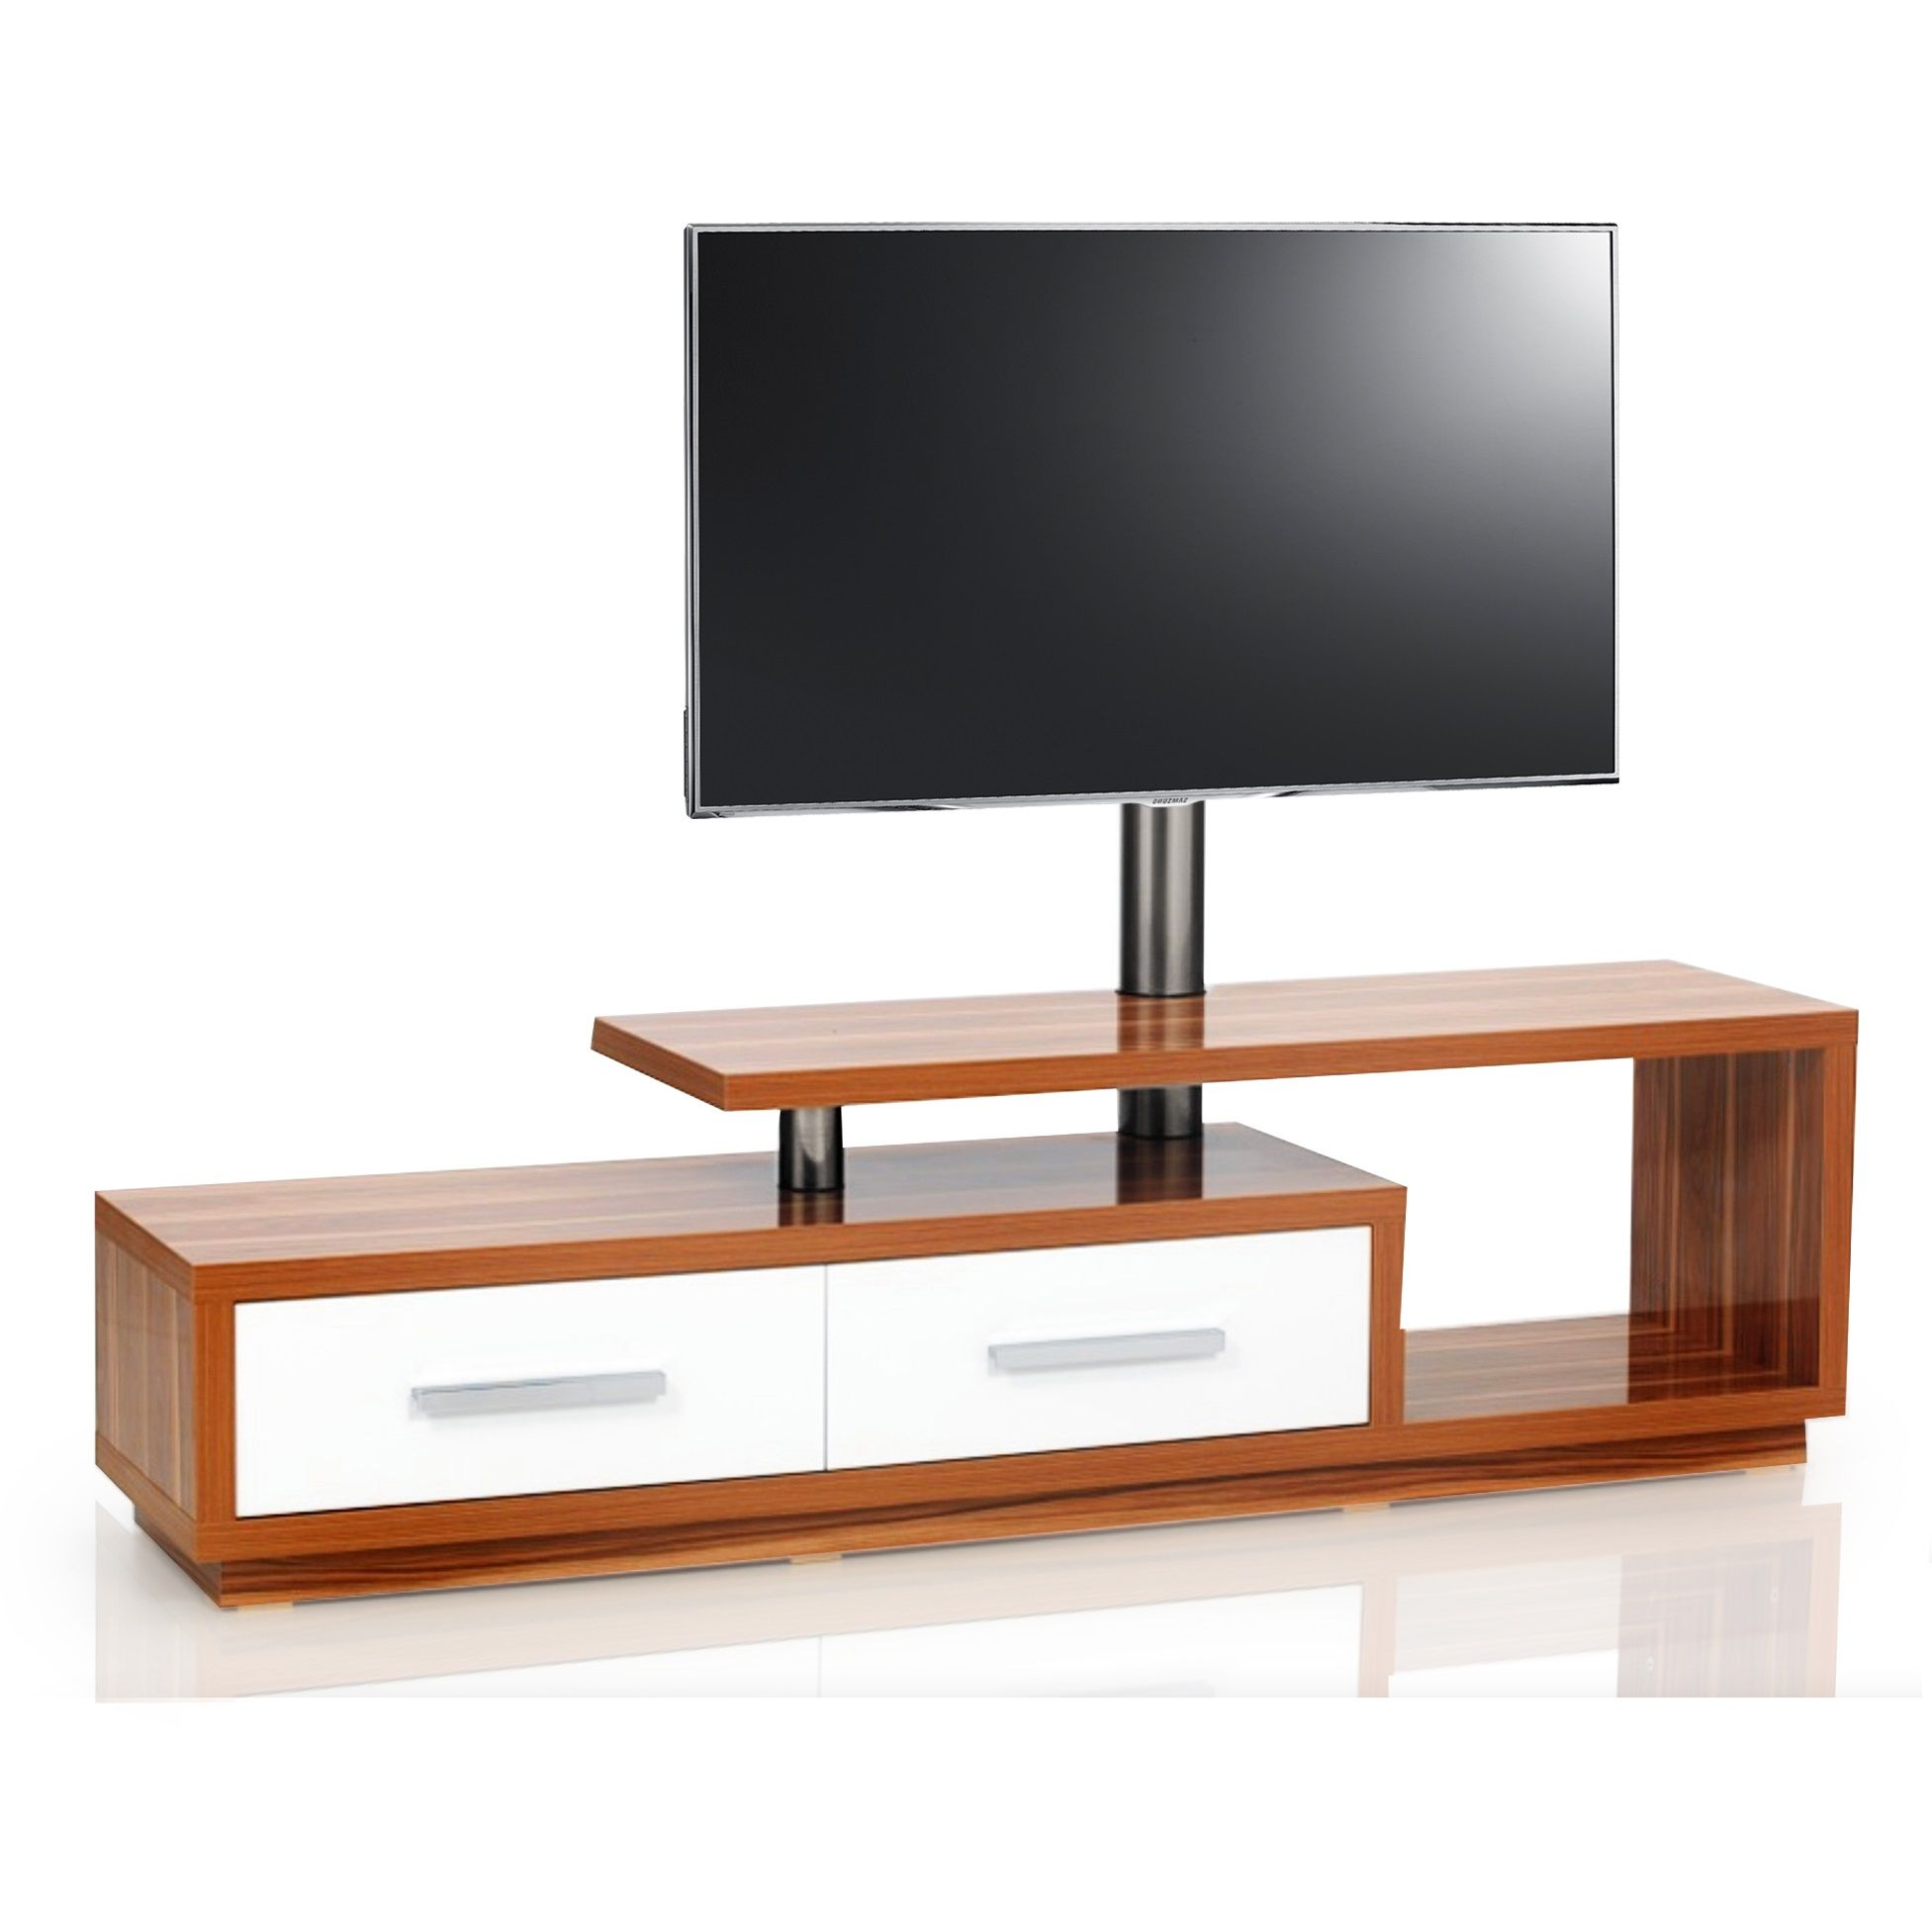 Best Tables Tv Design Images Joshkrajcik Us Joshkrajcik Us # Meuble Tv Taupe Laque